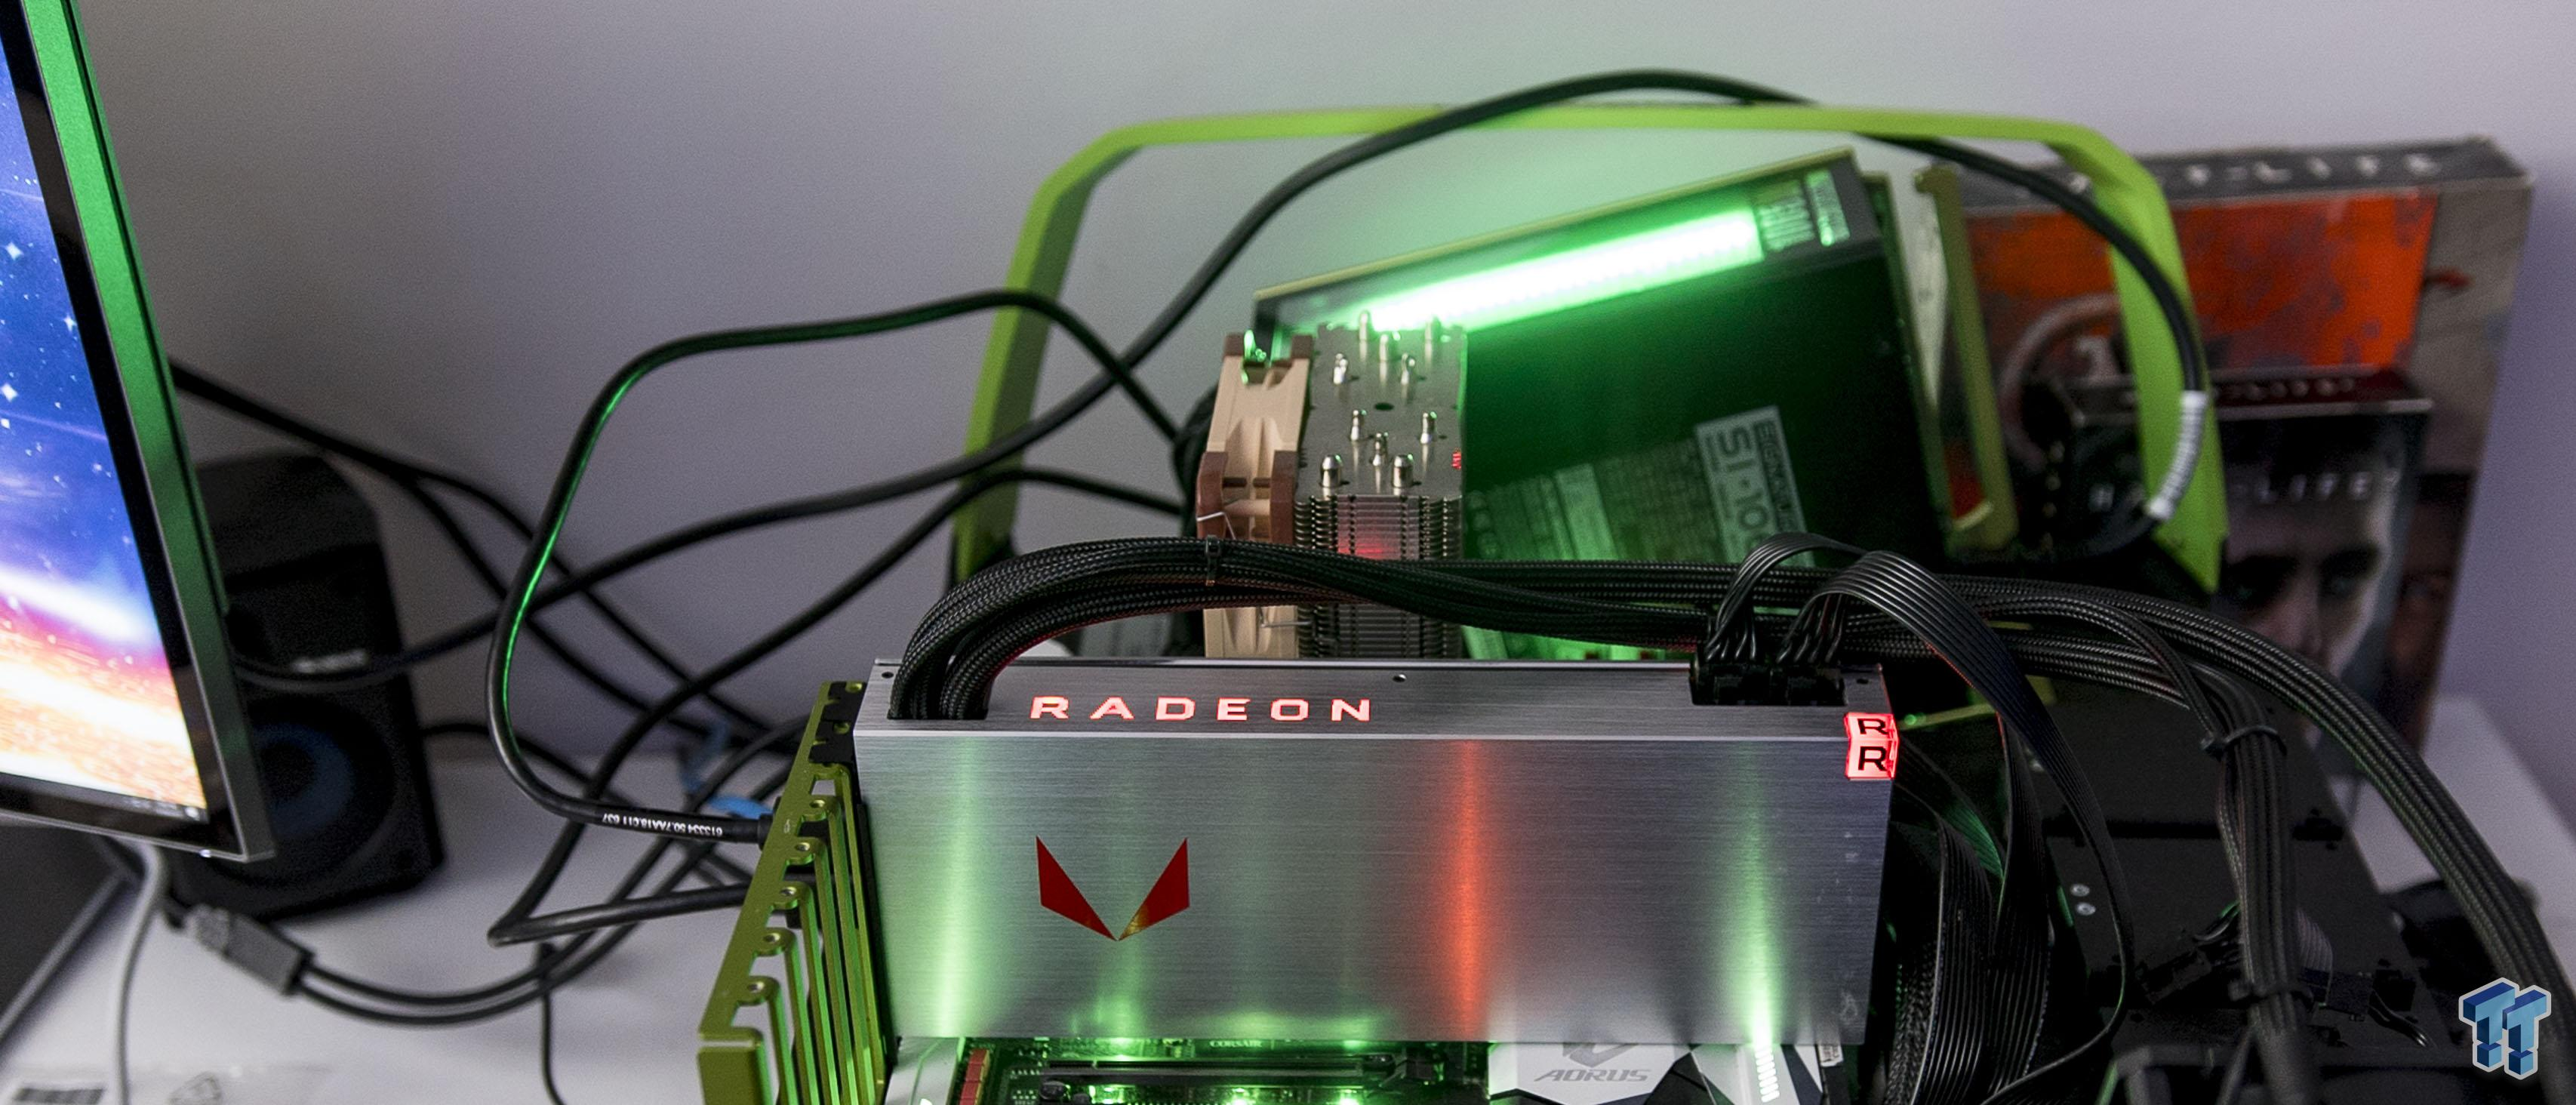 Amd Radeon Rx Vega 64 Liquid Cooled Edition Unboxed Tweaktown